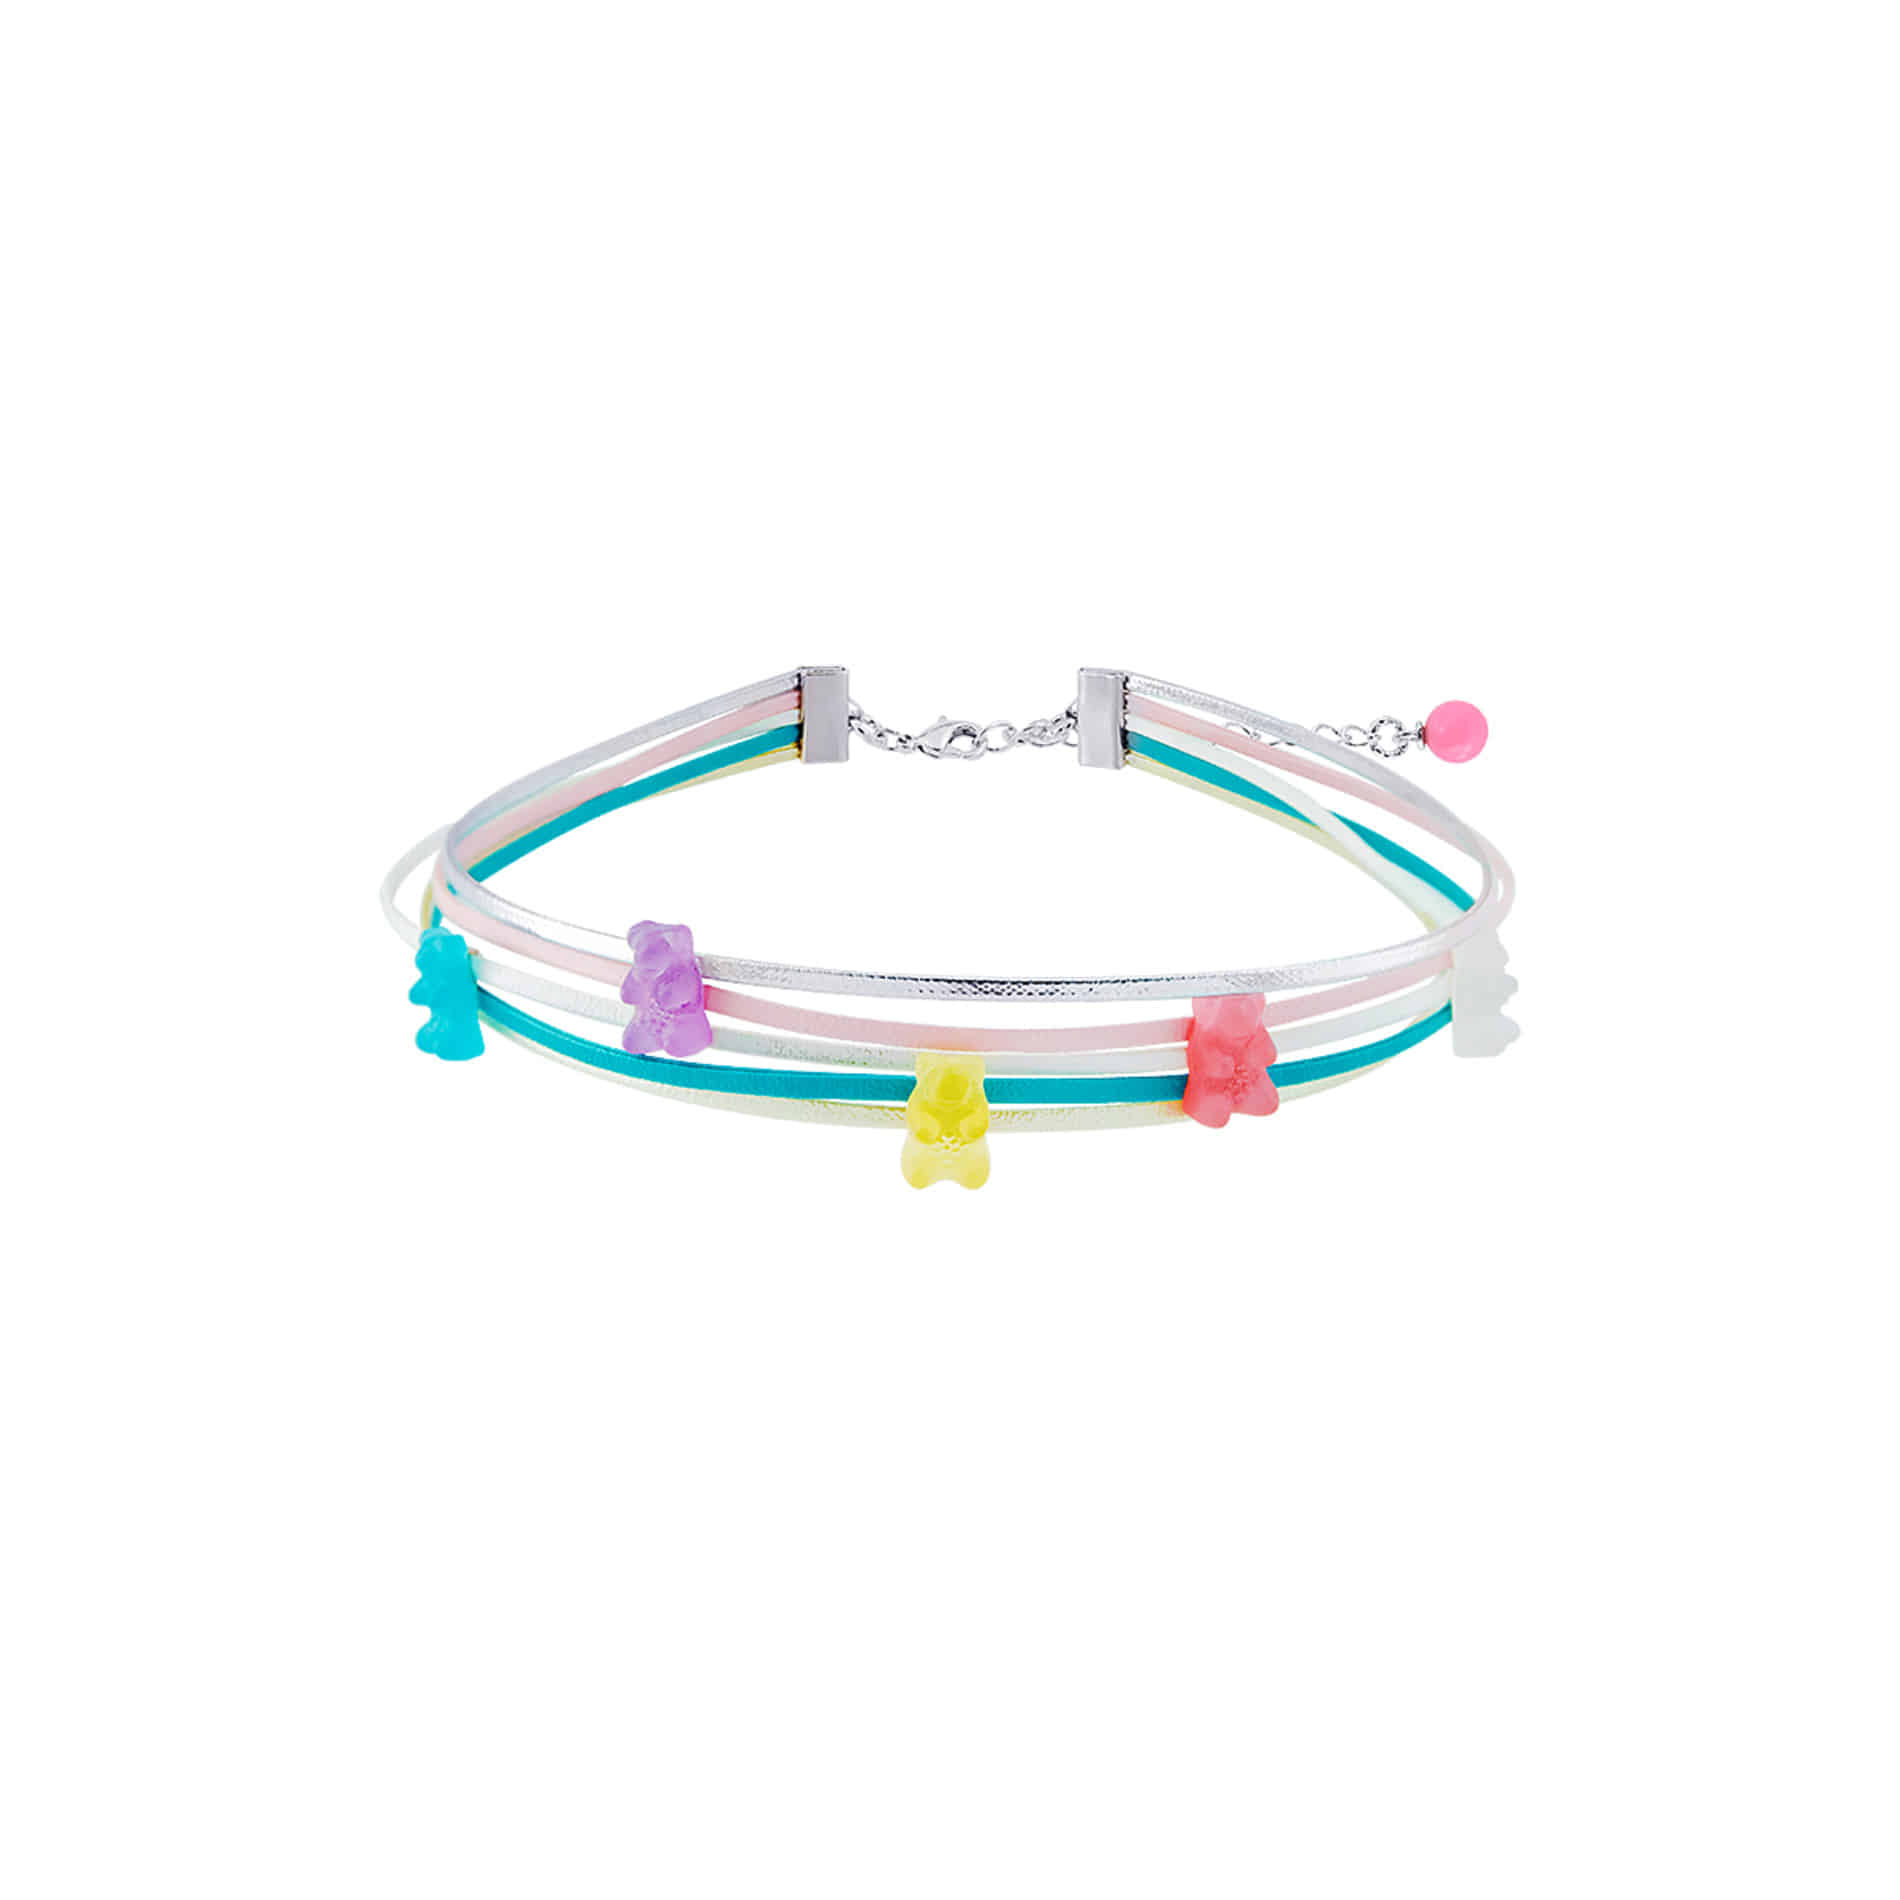 5 JELLY BEAR CHOKER NECKLACE (MULTI PASTEL)